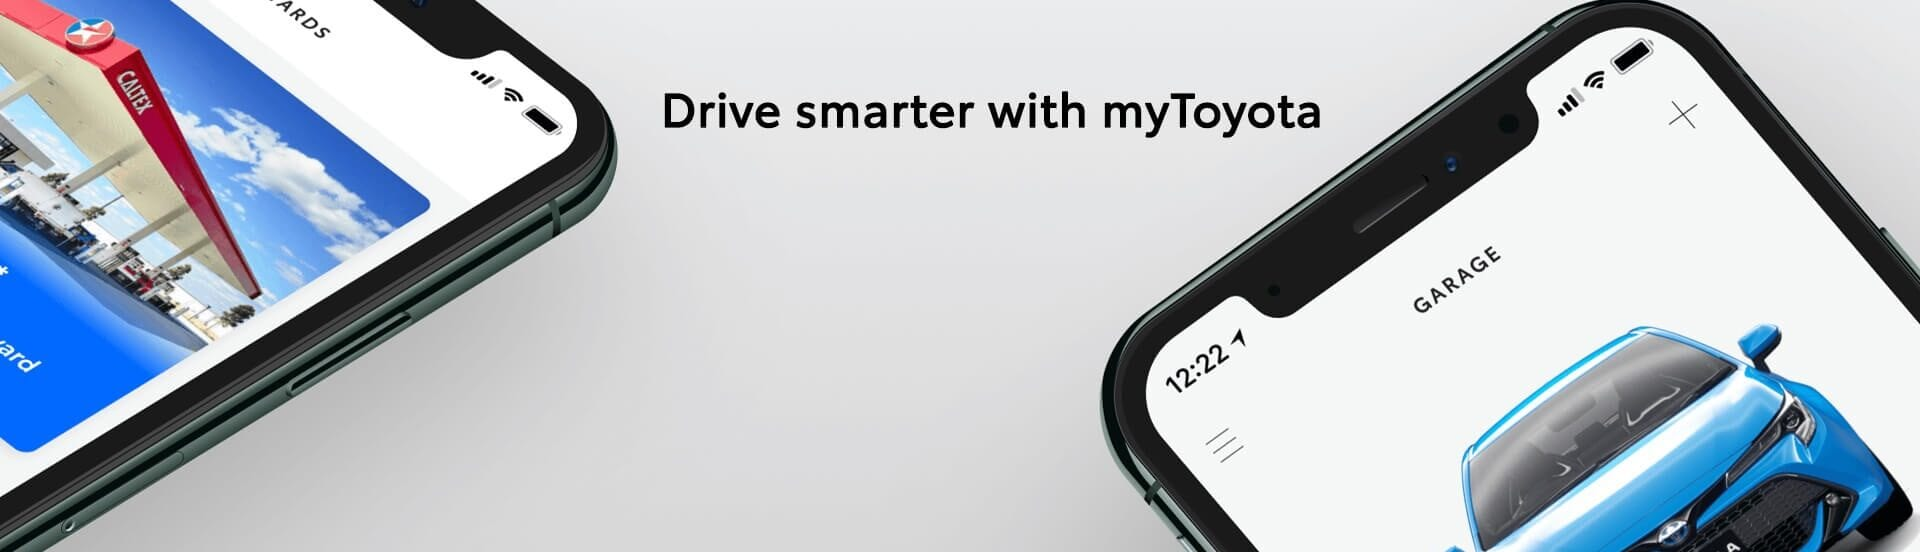 my_toyota_banner-e1600305804337